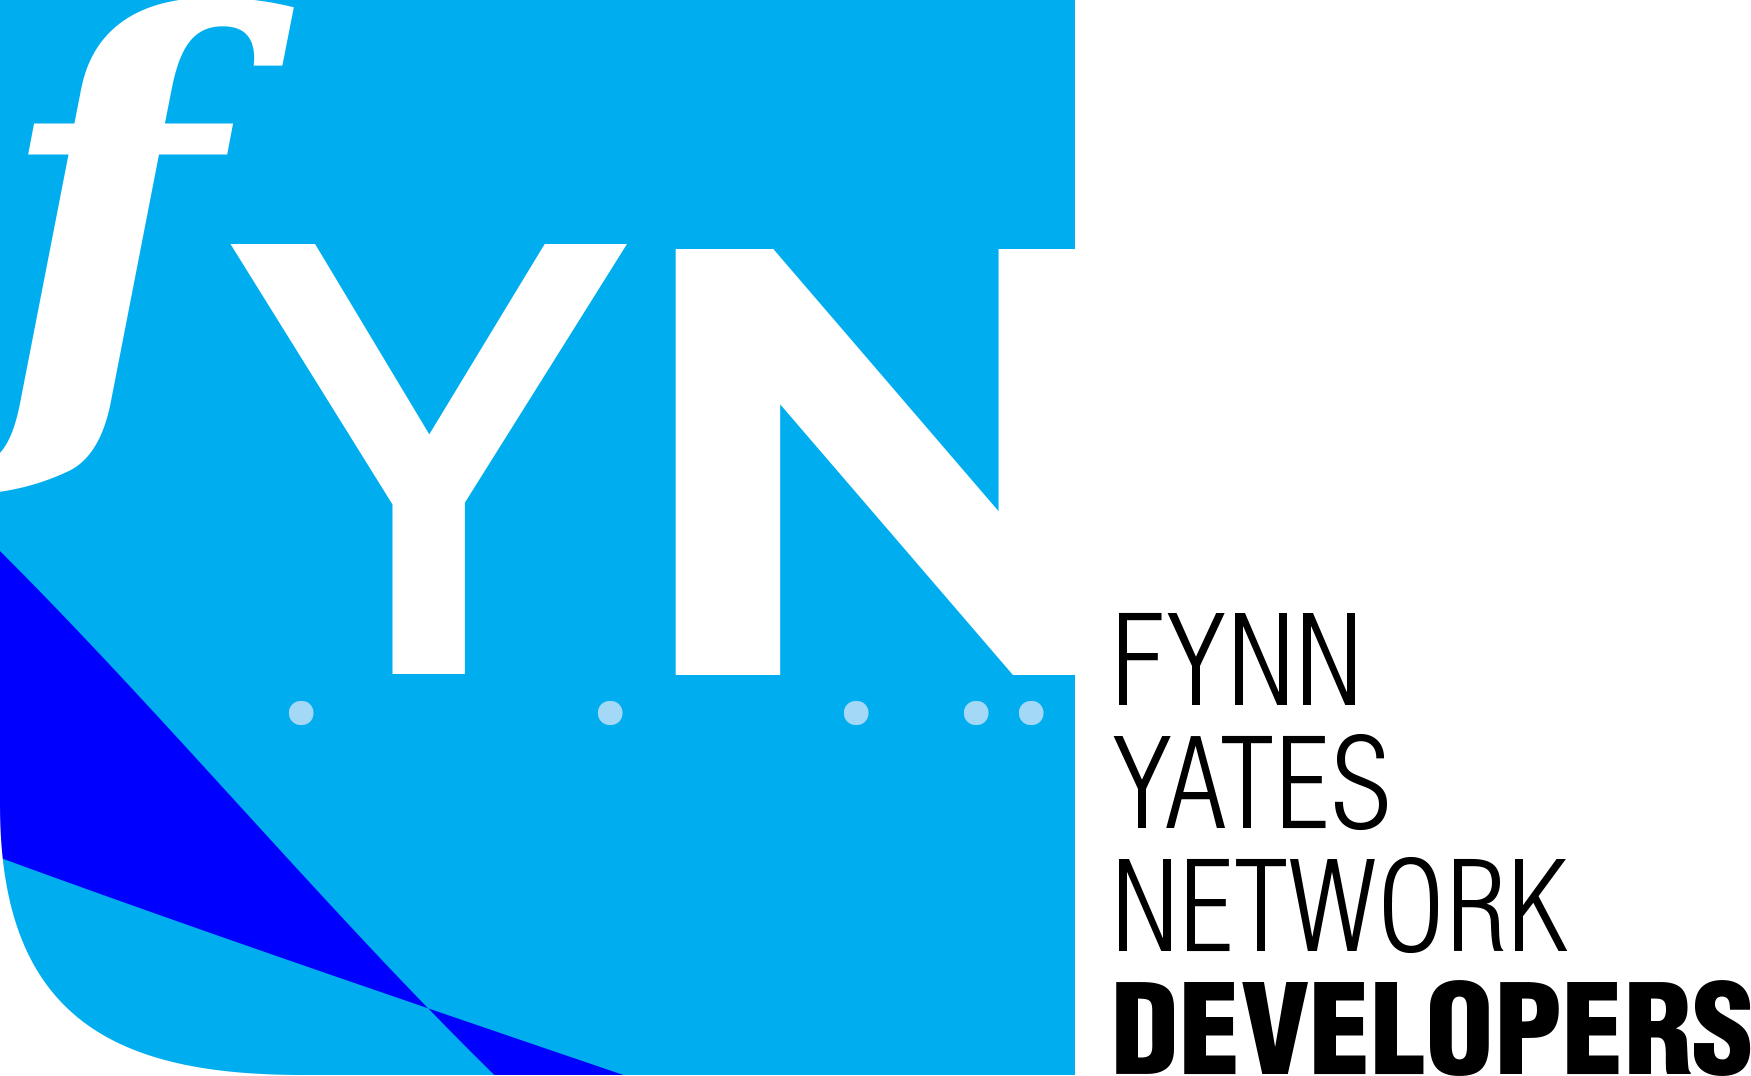 FYN Developers